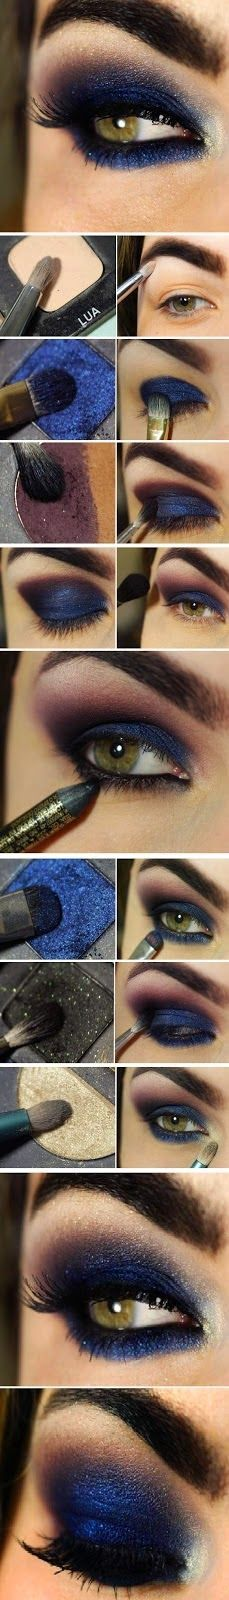 How to : Navy blue palette Makeup Tutorials - Step by Step